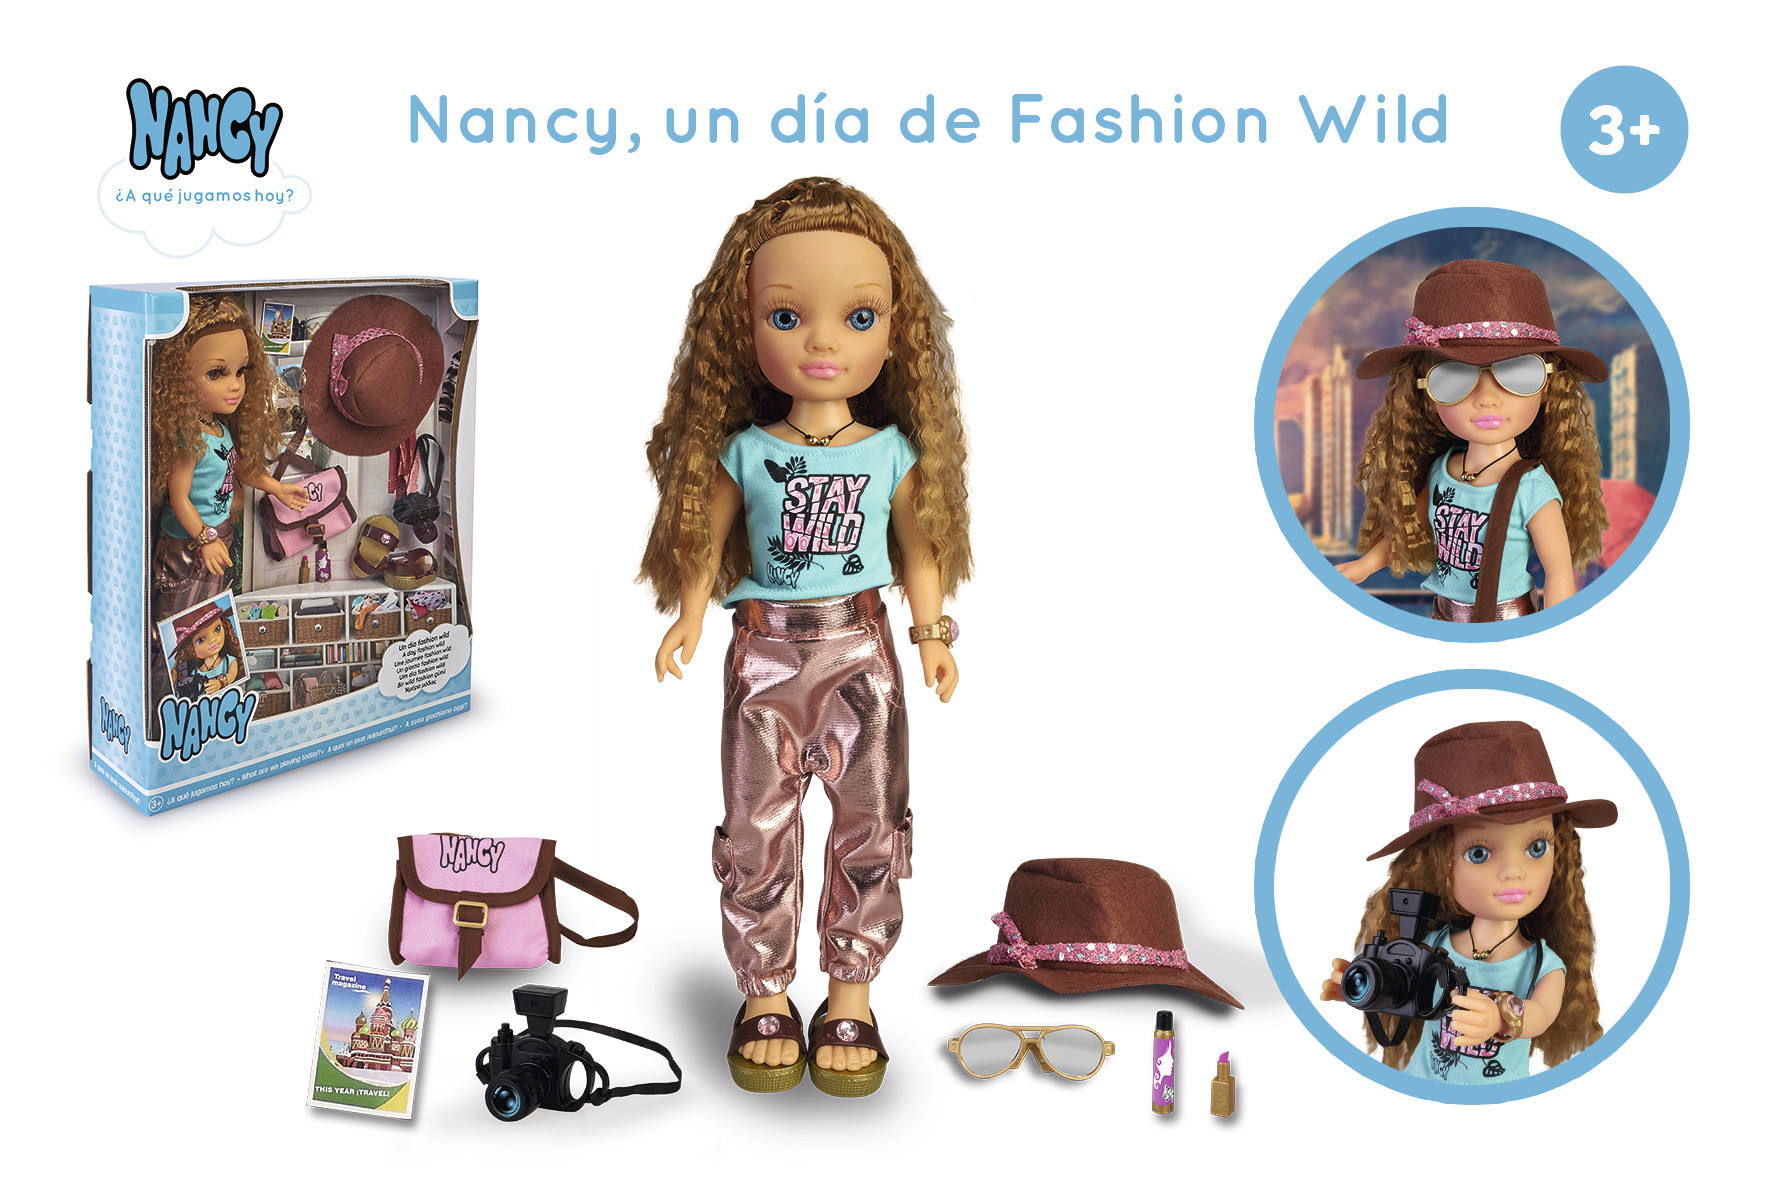 NANCY UN DIA FASHION 15786